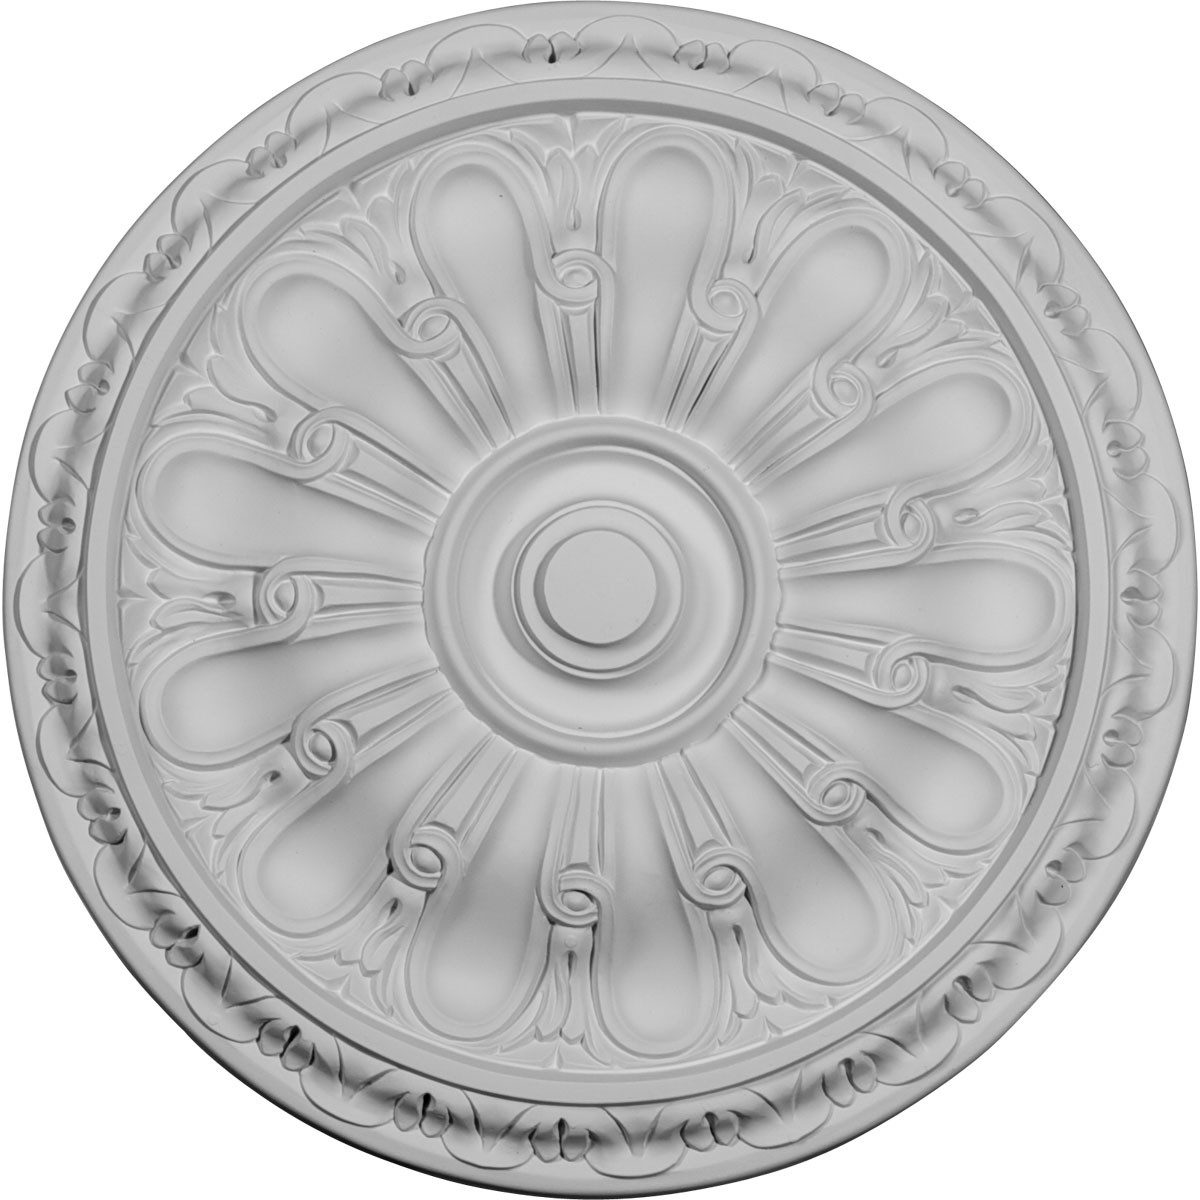 "EM-CM16KI - 15 3/4""OD x 5/8""P Kirke Ceiling Medallion (Fits Canopies up to 3 3/4"")"